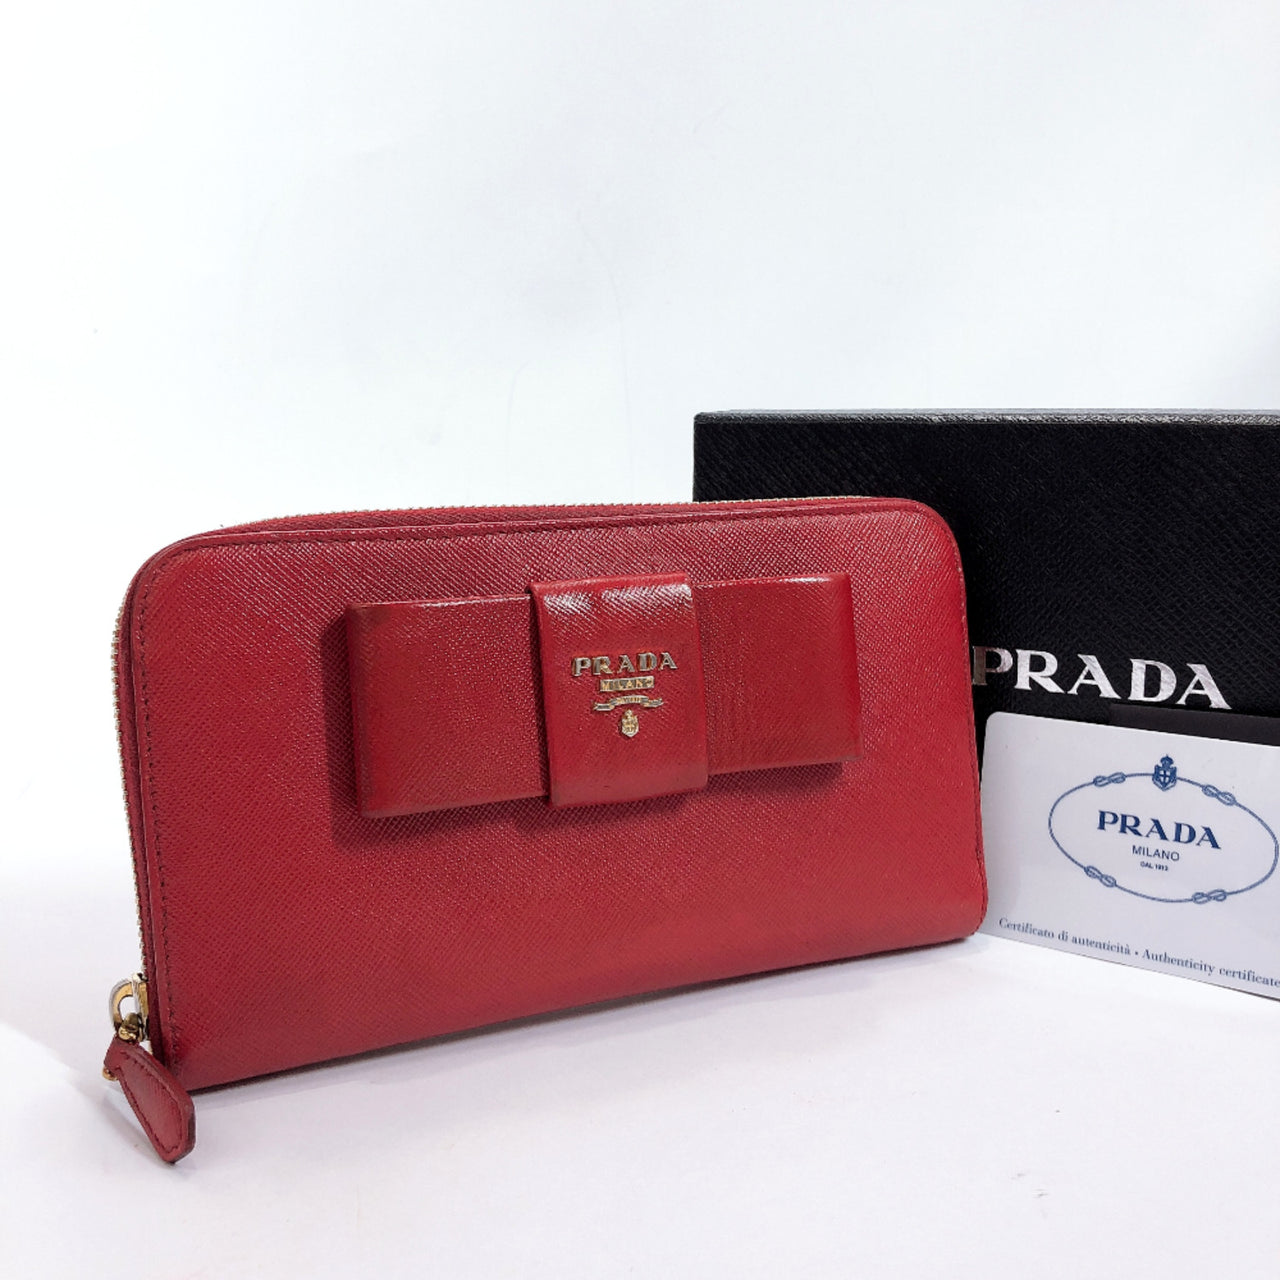 PRADA purse 1M0506 Round zip Safiano leather Red Women Used